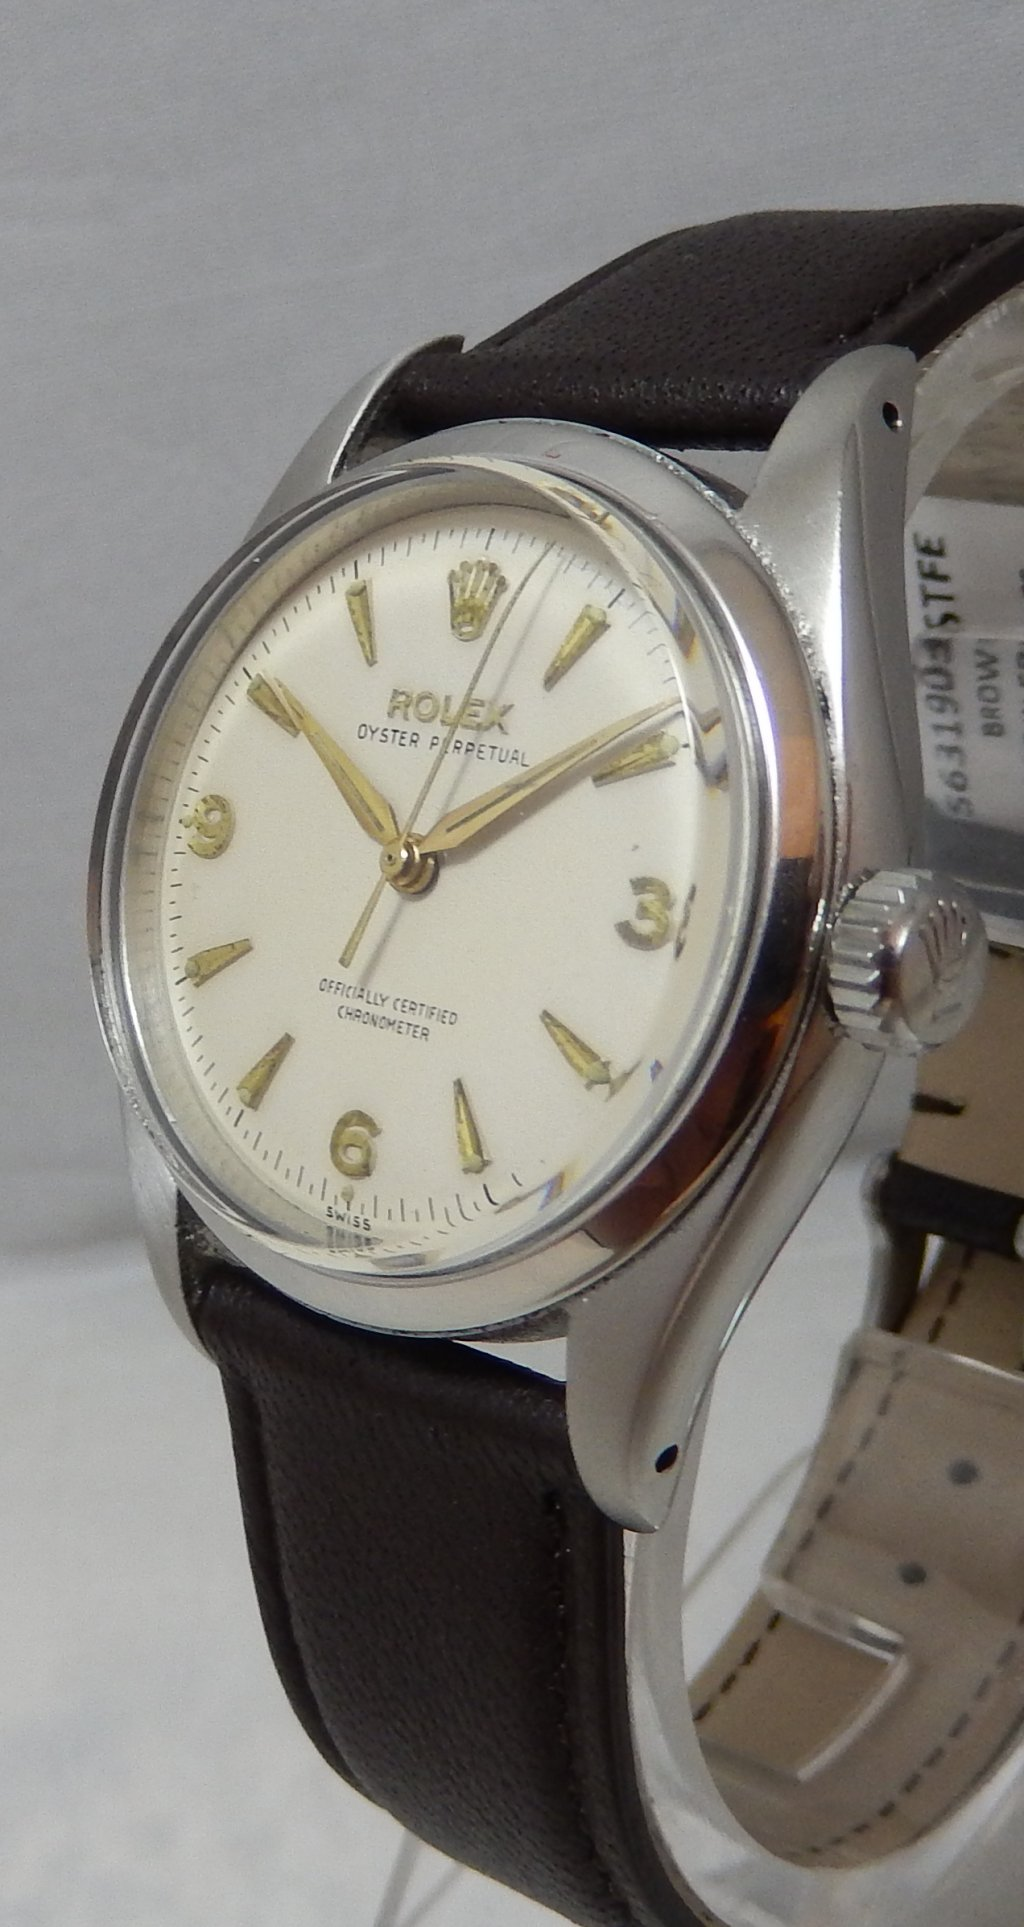 8a7750b747c Details about Rolex Oyster Perpetual 34 mm Mens White Dial Watch cal 1030  Leather Strap 1957